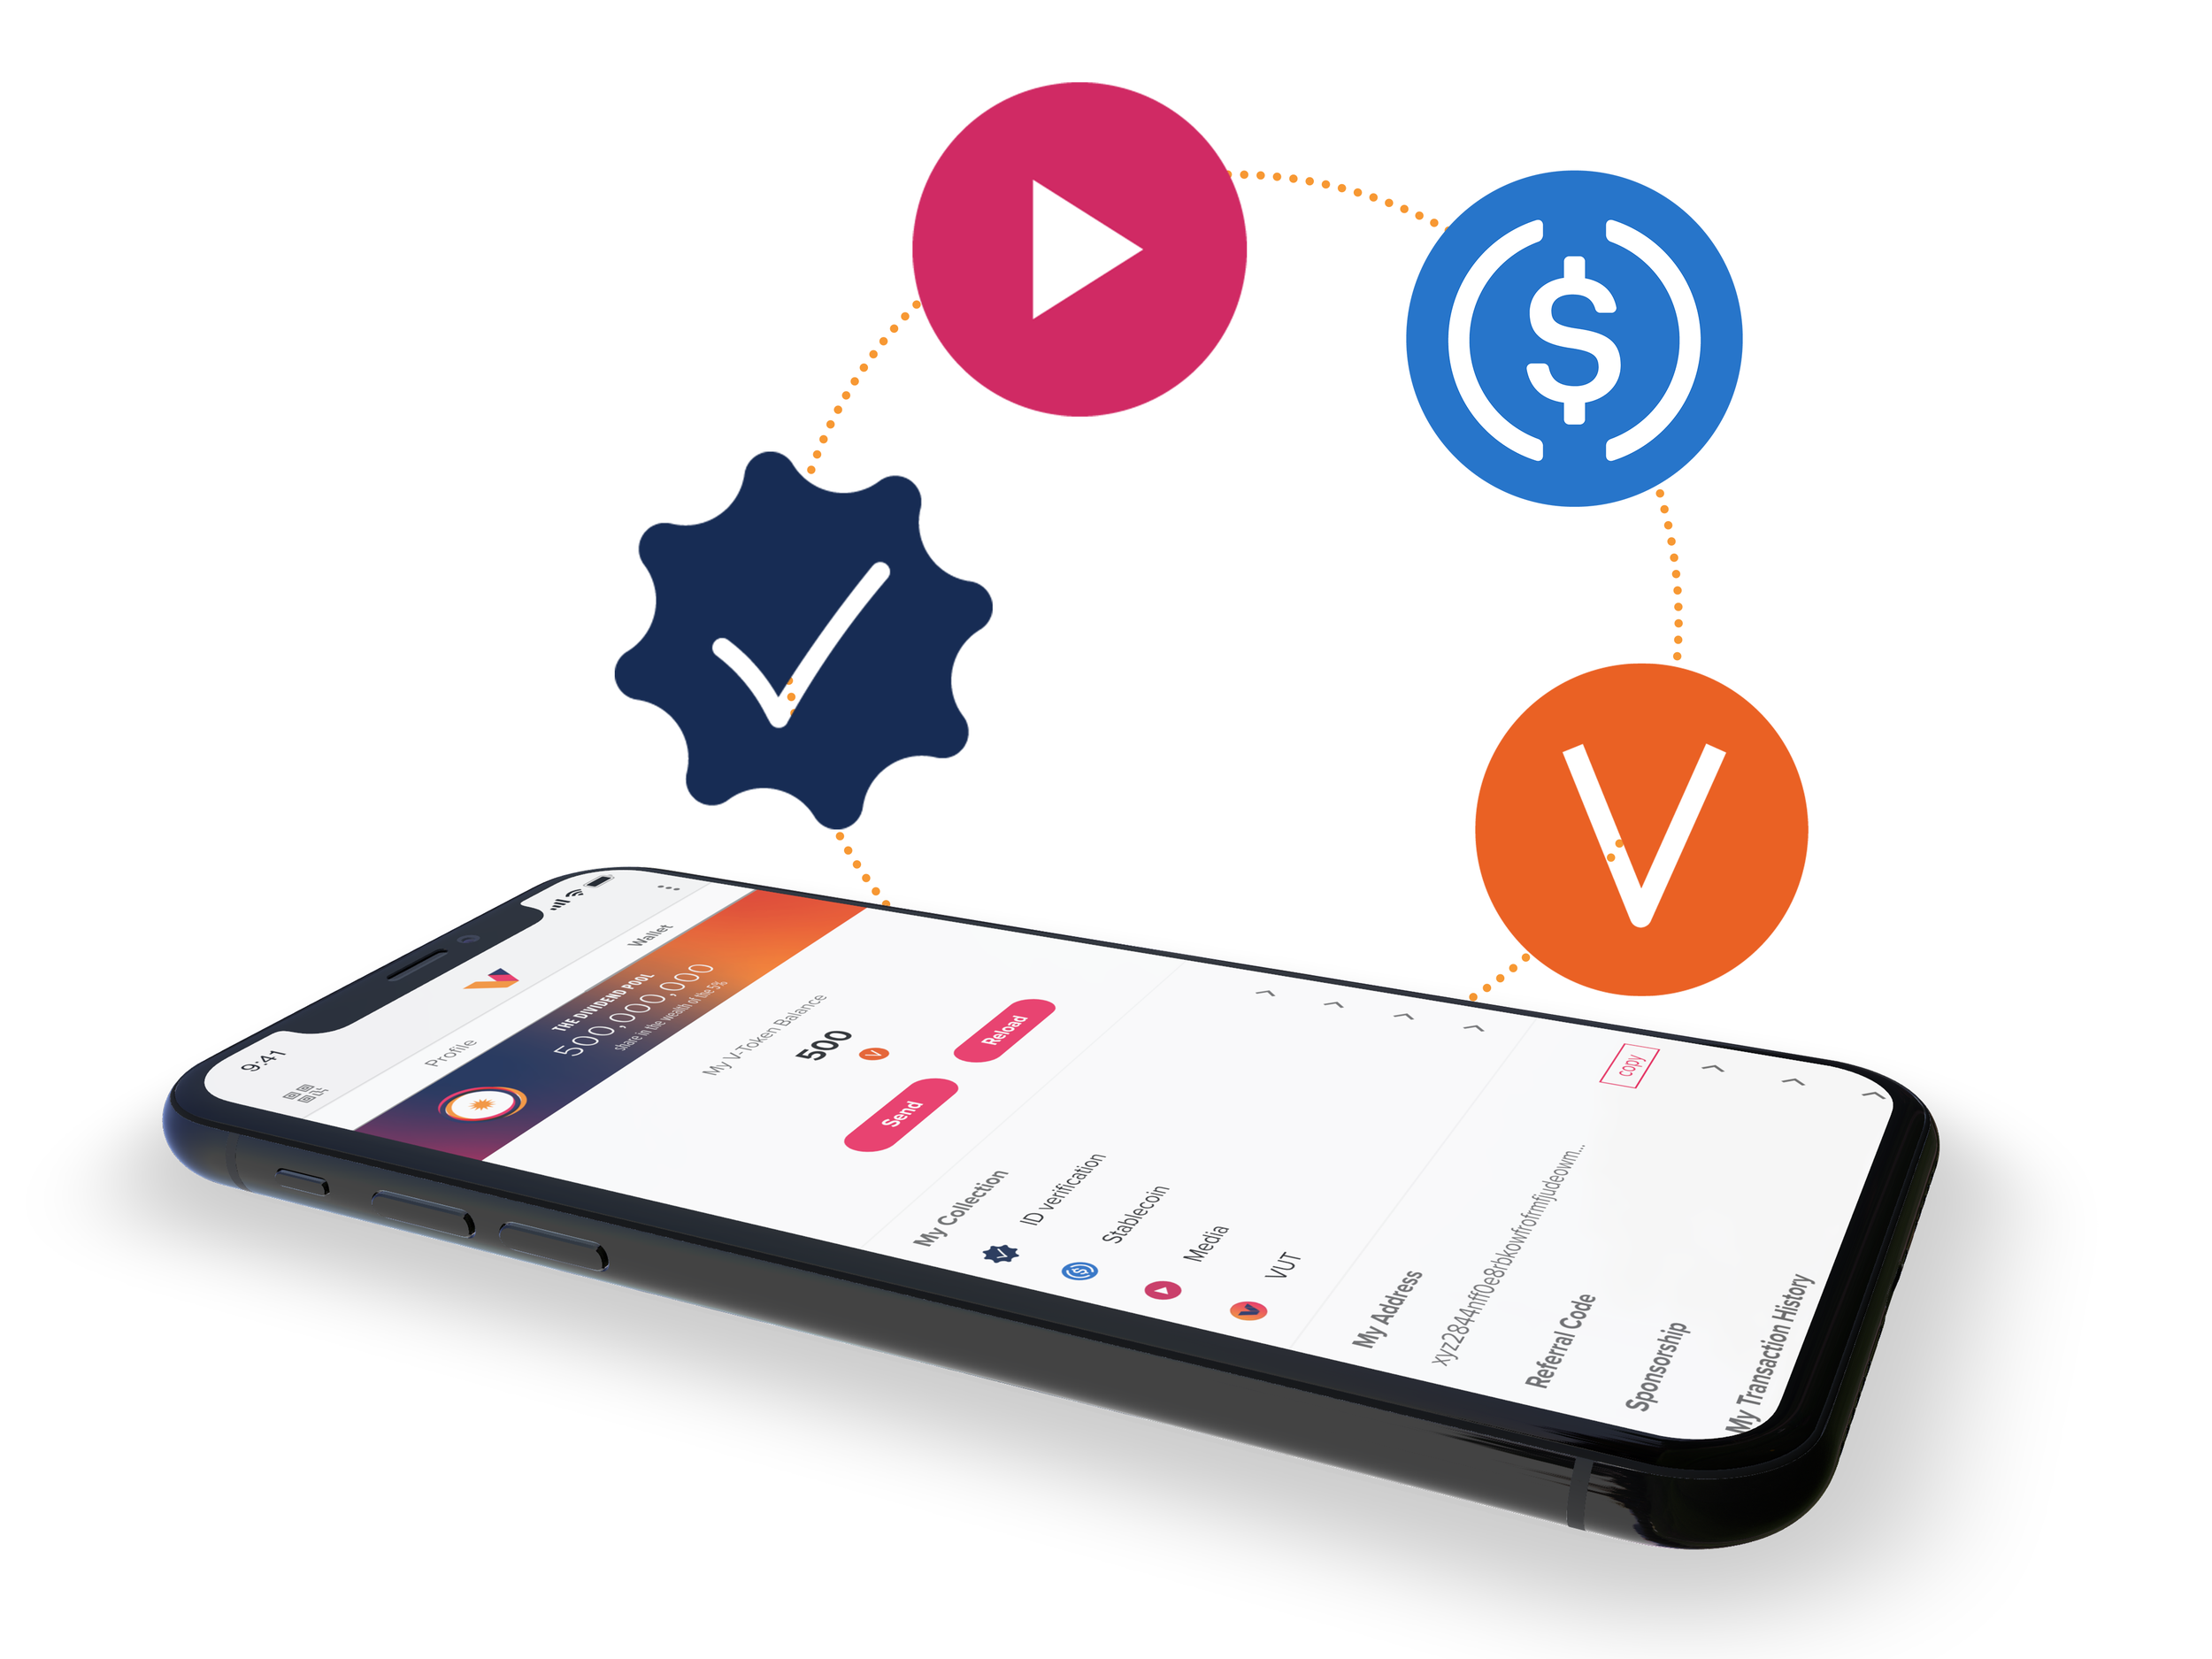 Built on a Revolutionary Multi-token Economy - Vevue is designed to monetize engagement enabled by user transactions for paywalls, up and down votes, cheers, sponsorships and requests.